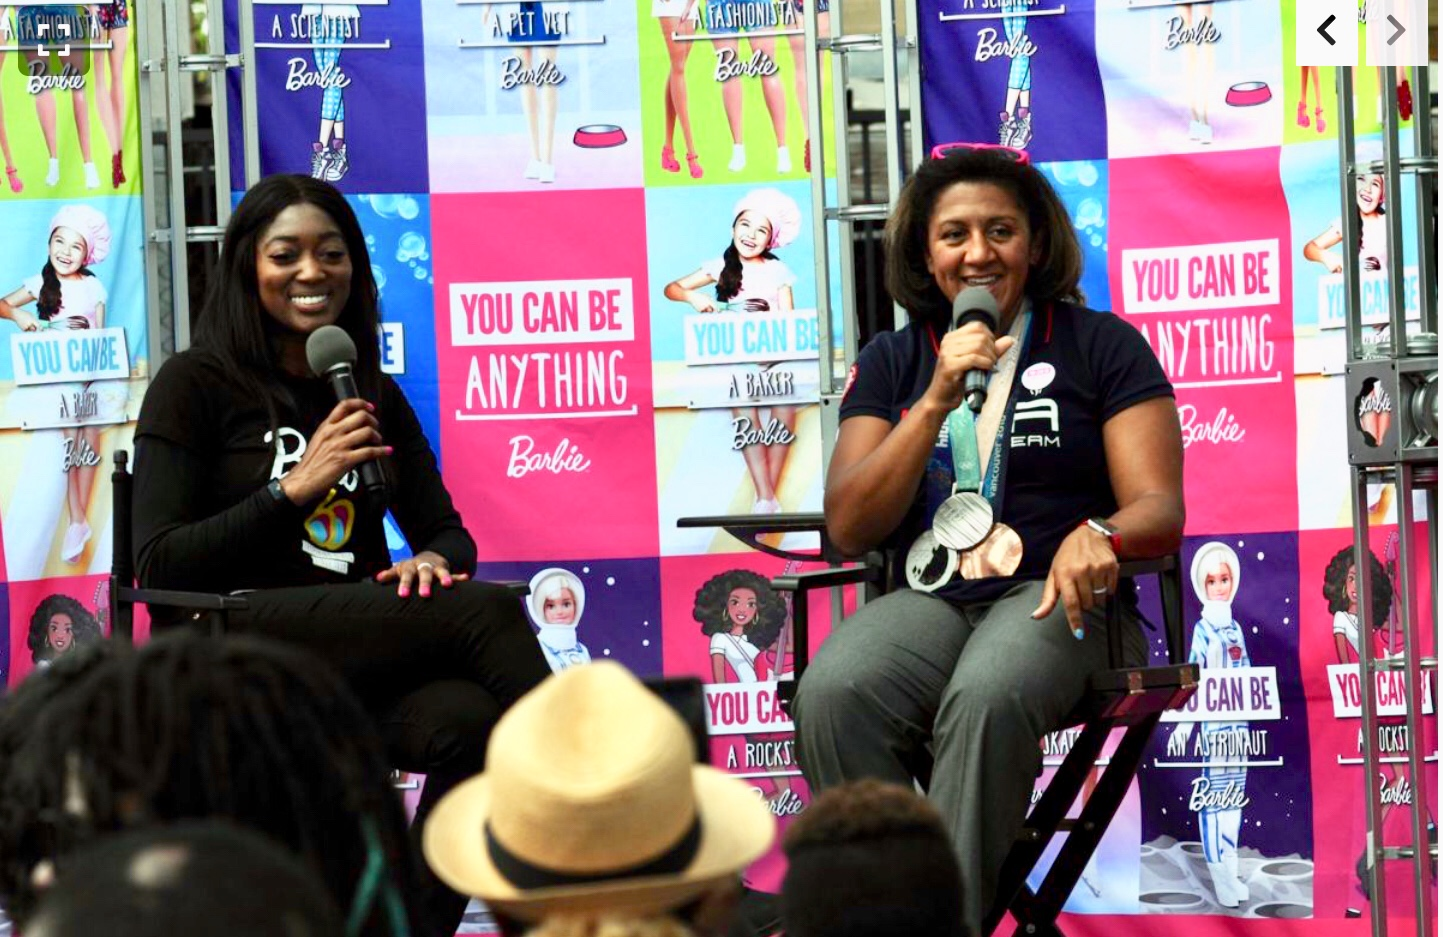 """barbie """"be anything"""" tour - Britney interviewing Elana Meyers Taylor, triple Olympic Bobsled Medalist, for the """"You Can Be Anything Tour"""" by Barbie."""